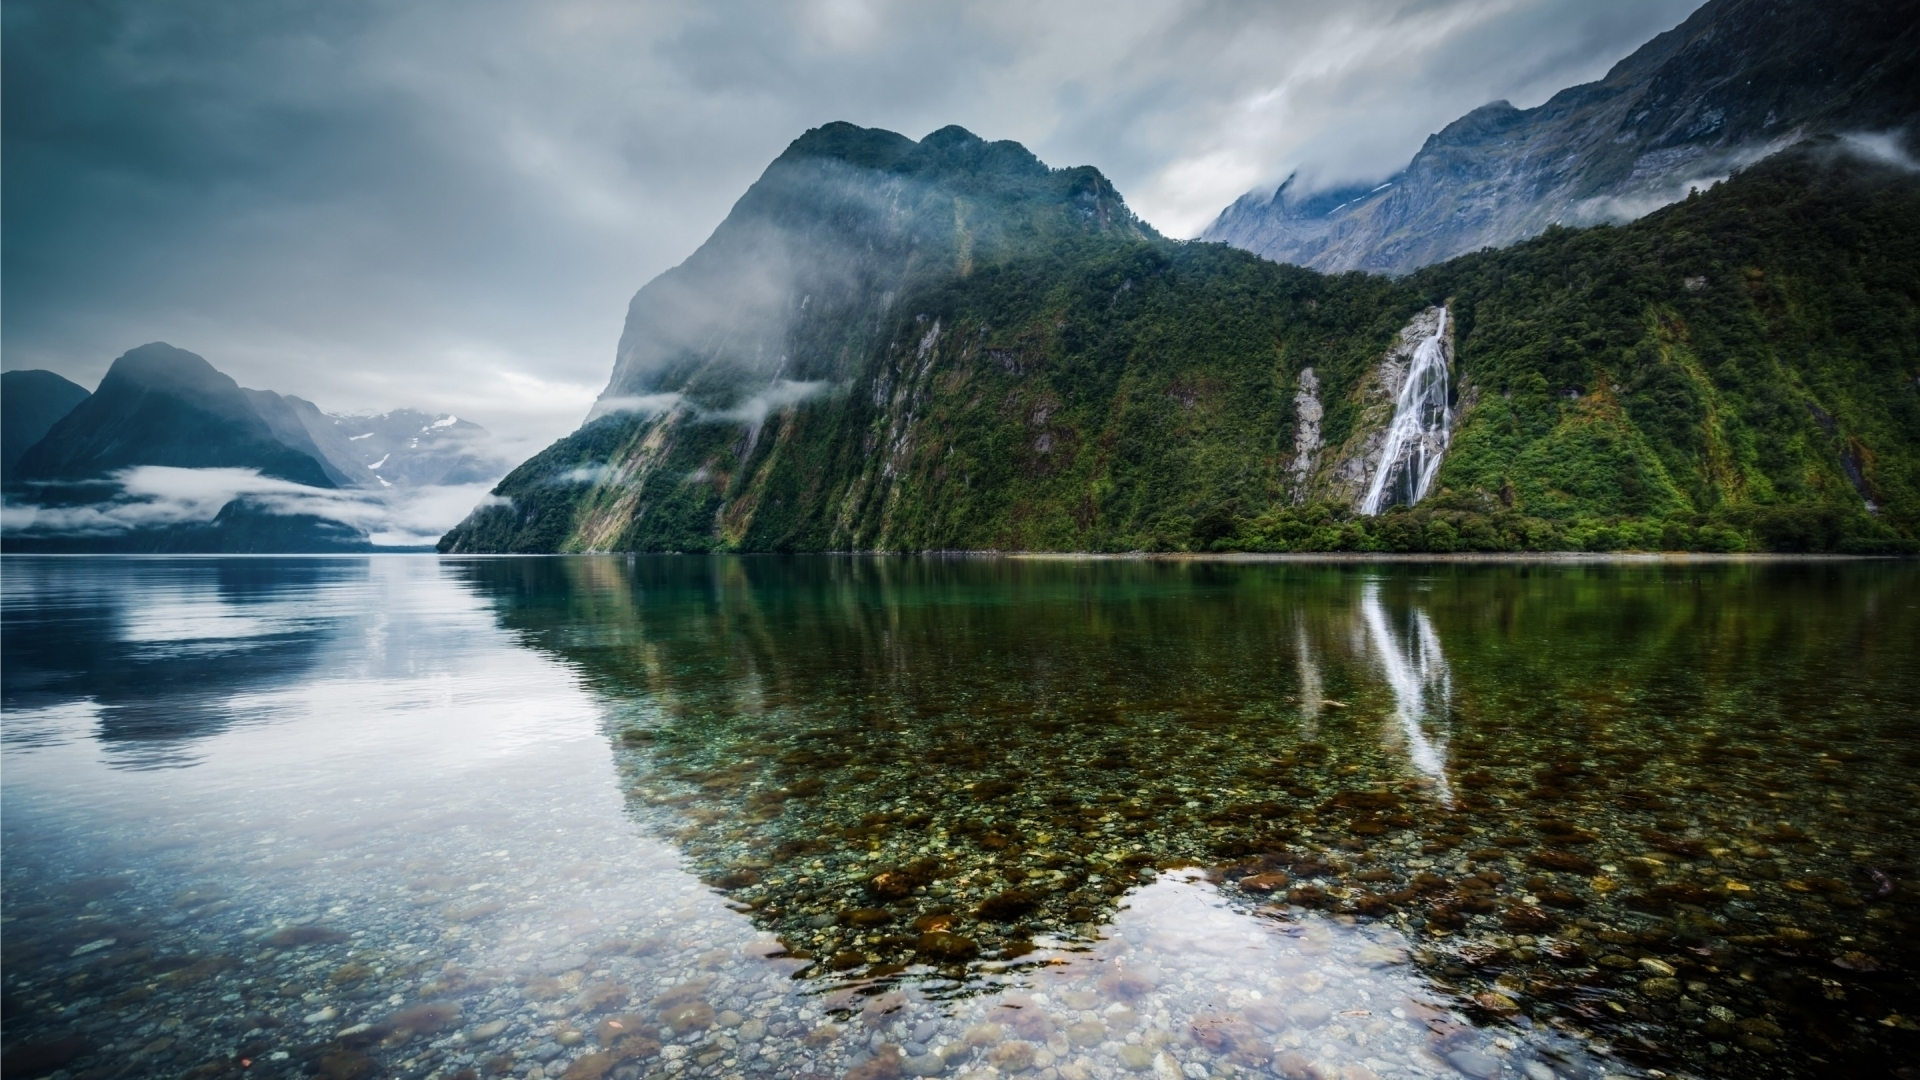 40 full hd new zealand wallpapers for free download: the land of the